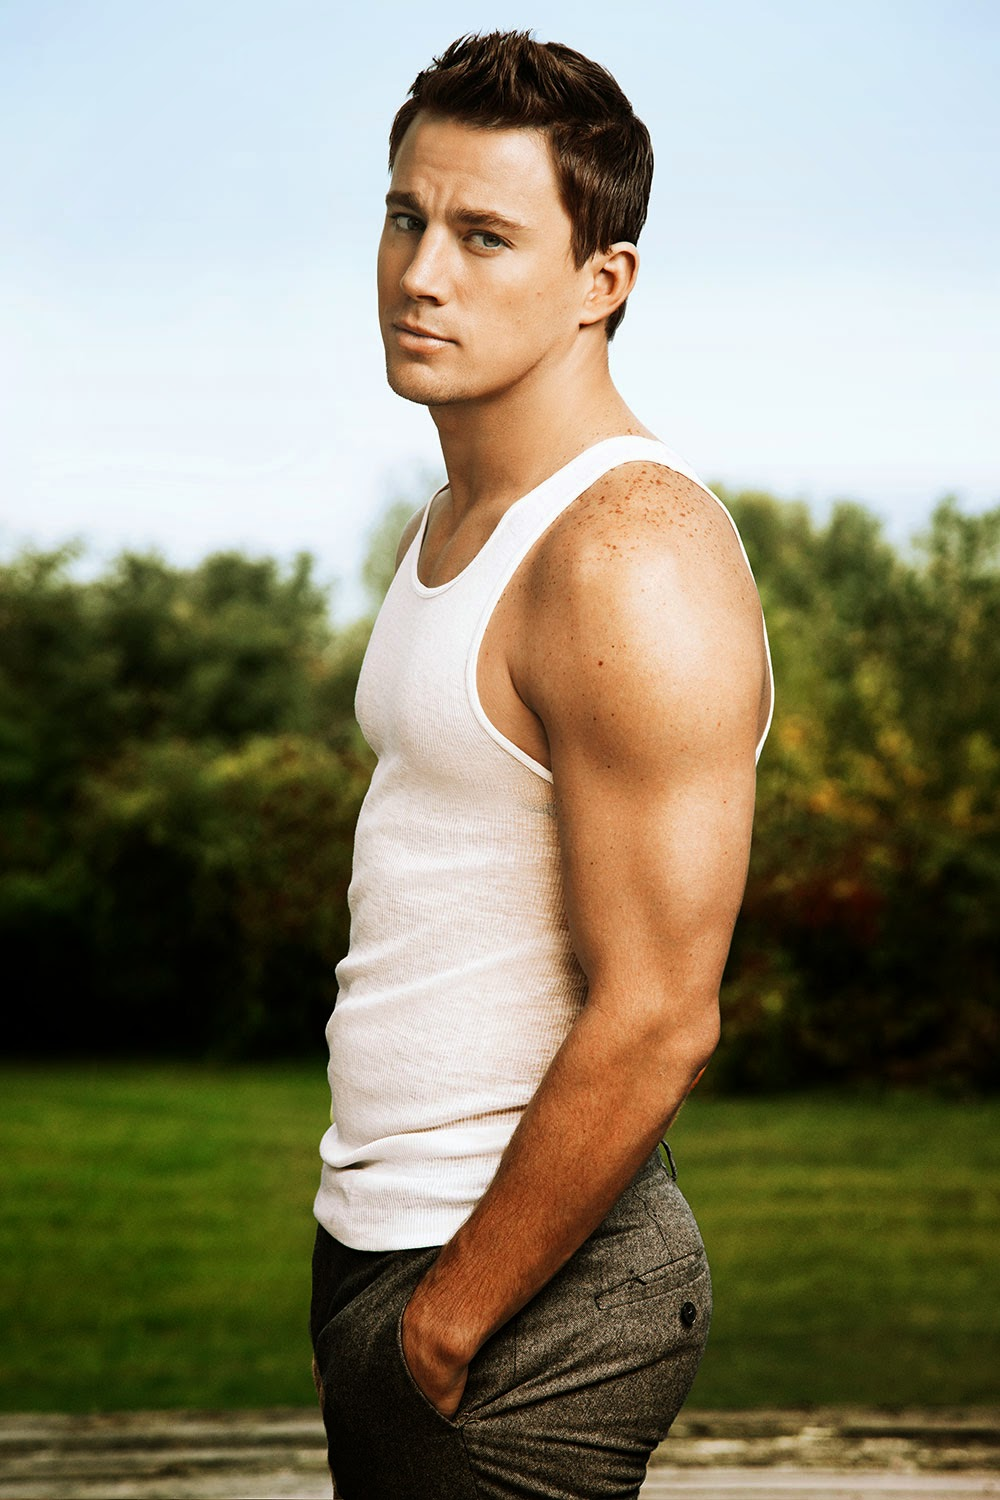 MOST BEAUTIFUL MEN: CHANNING TATUM Channing Tatum